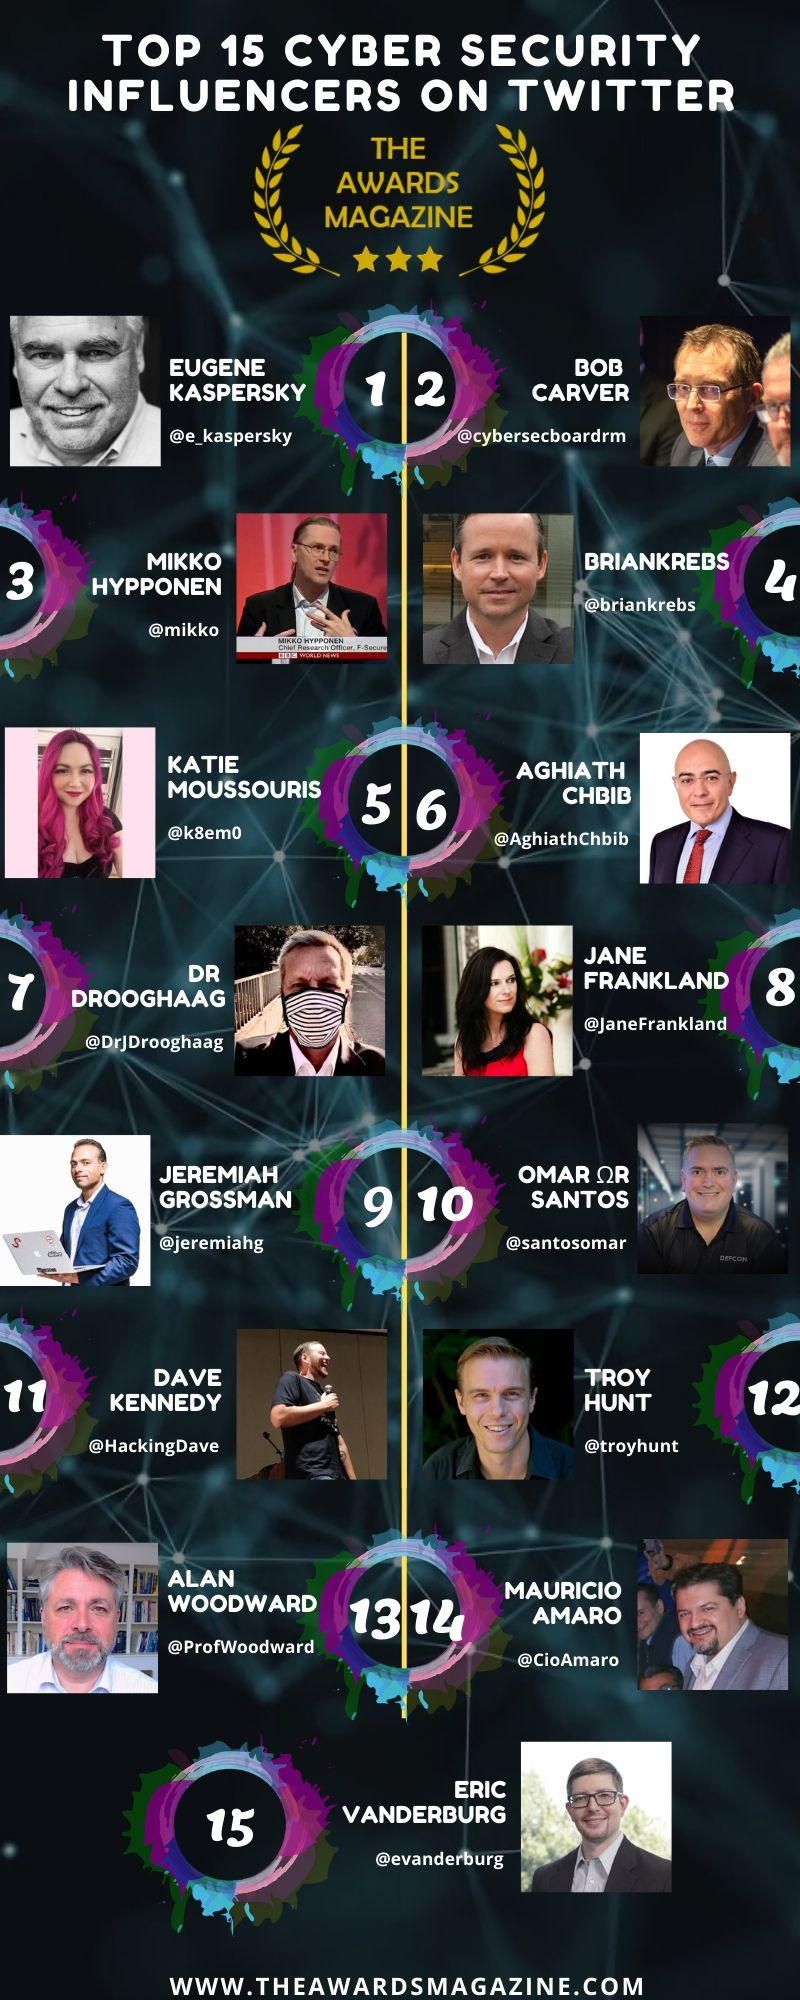 Cyber Security Influencers